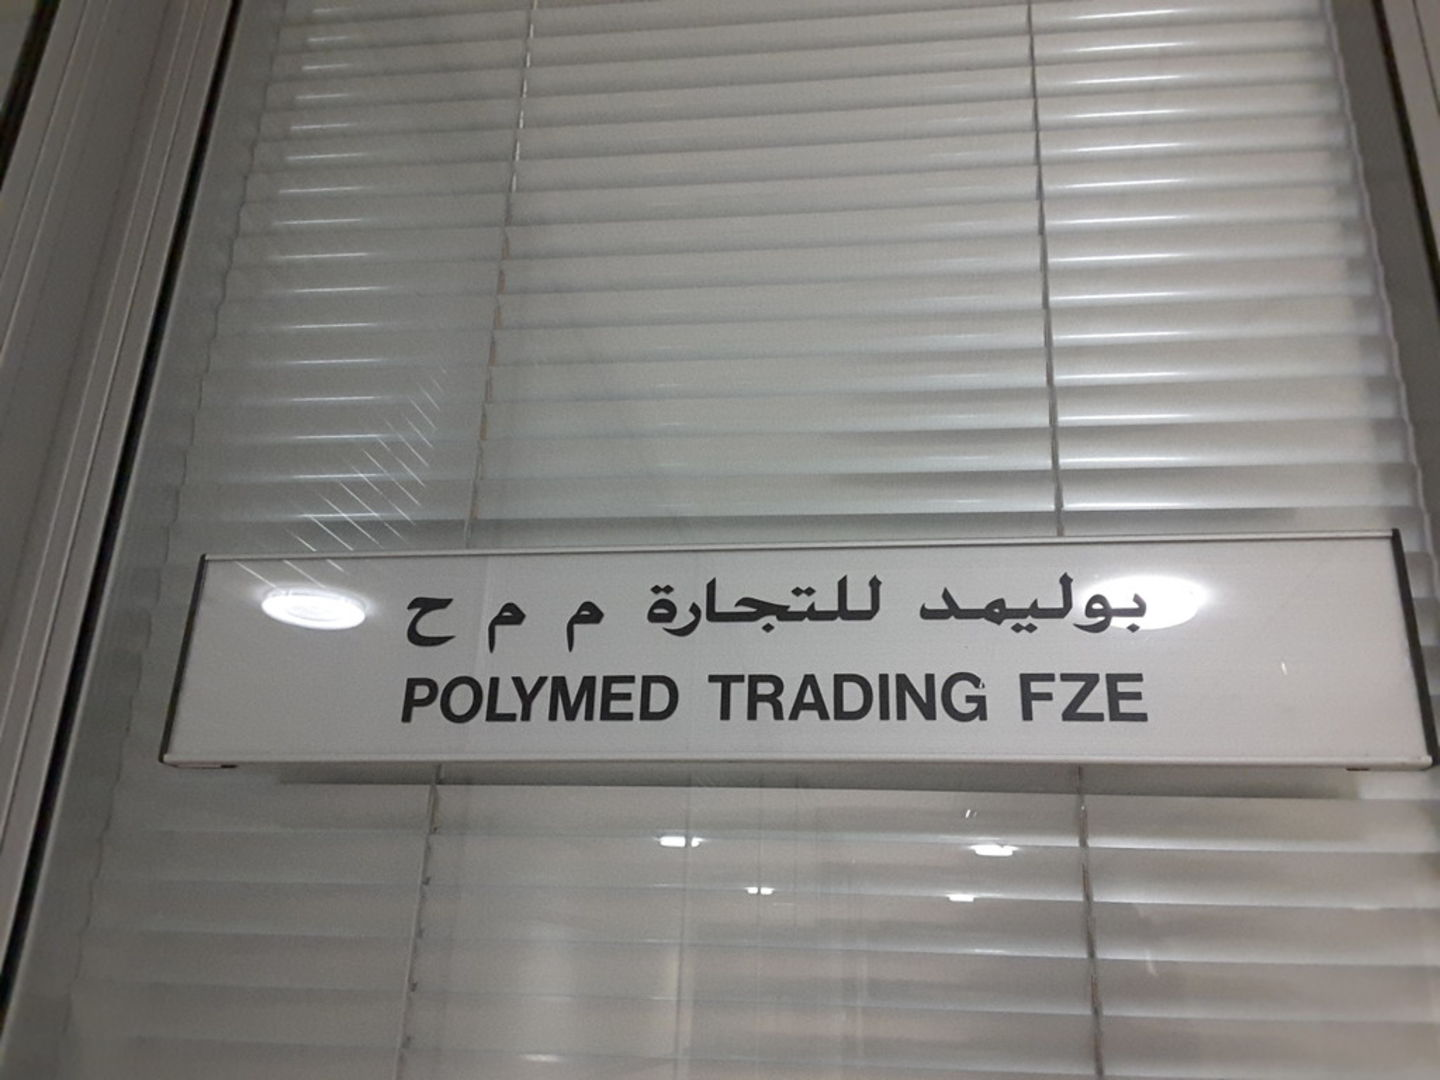 HiDubai-business-polymed-trading-fze-b2b-services-distributors-wholesalers-jebel-ali-industrial-2-dubai-2